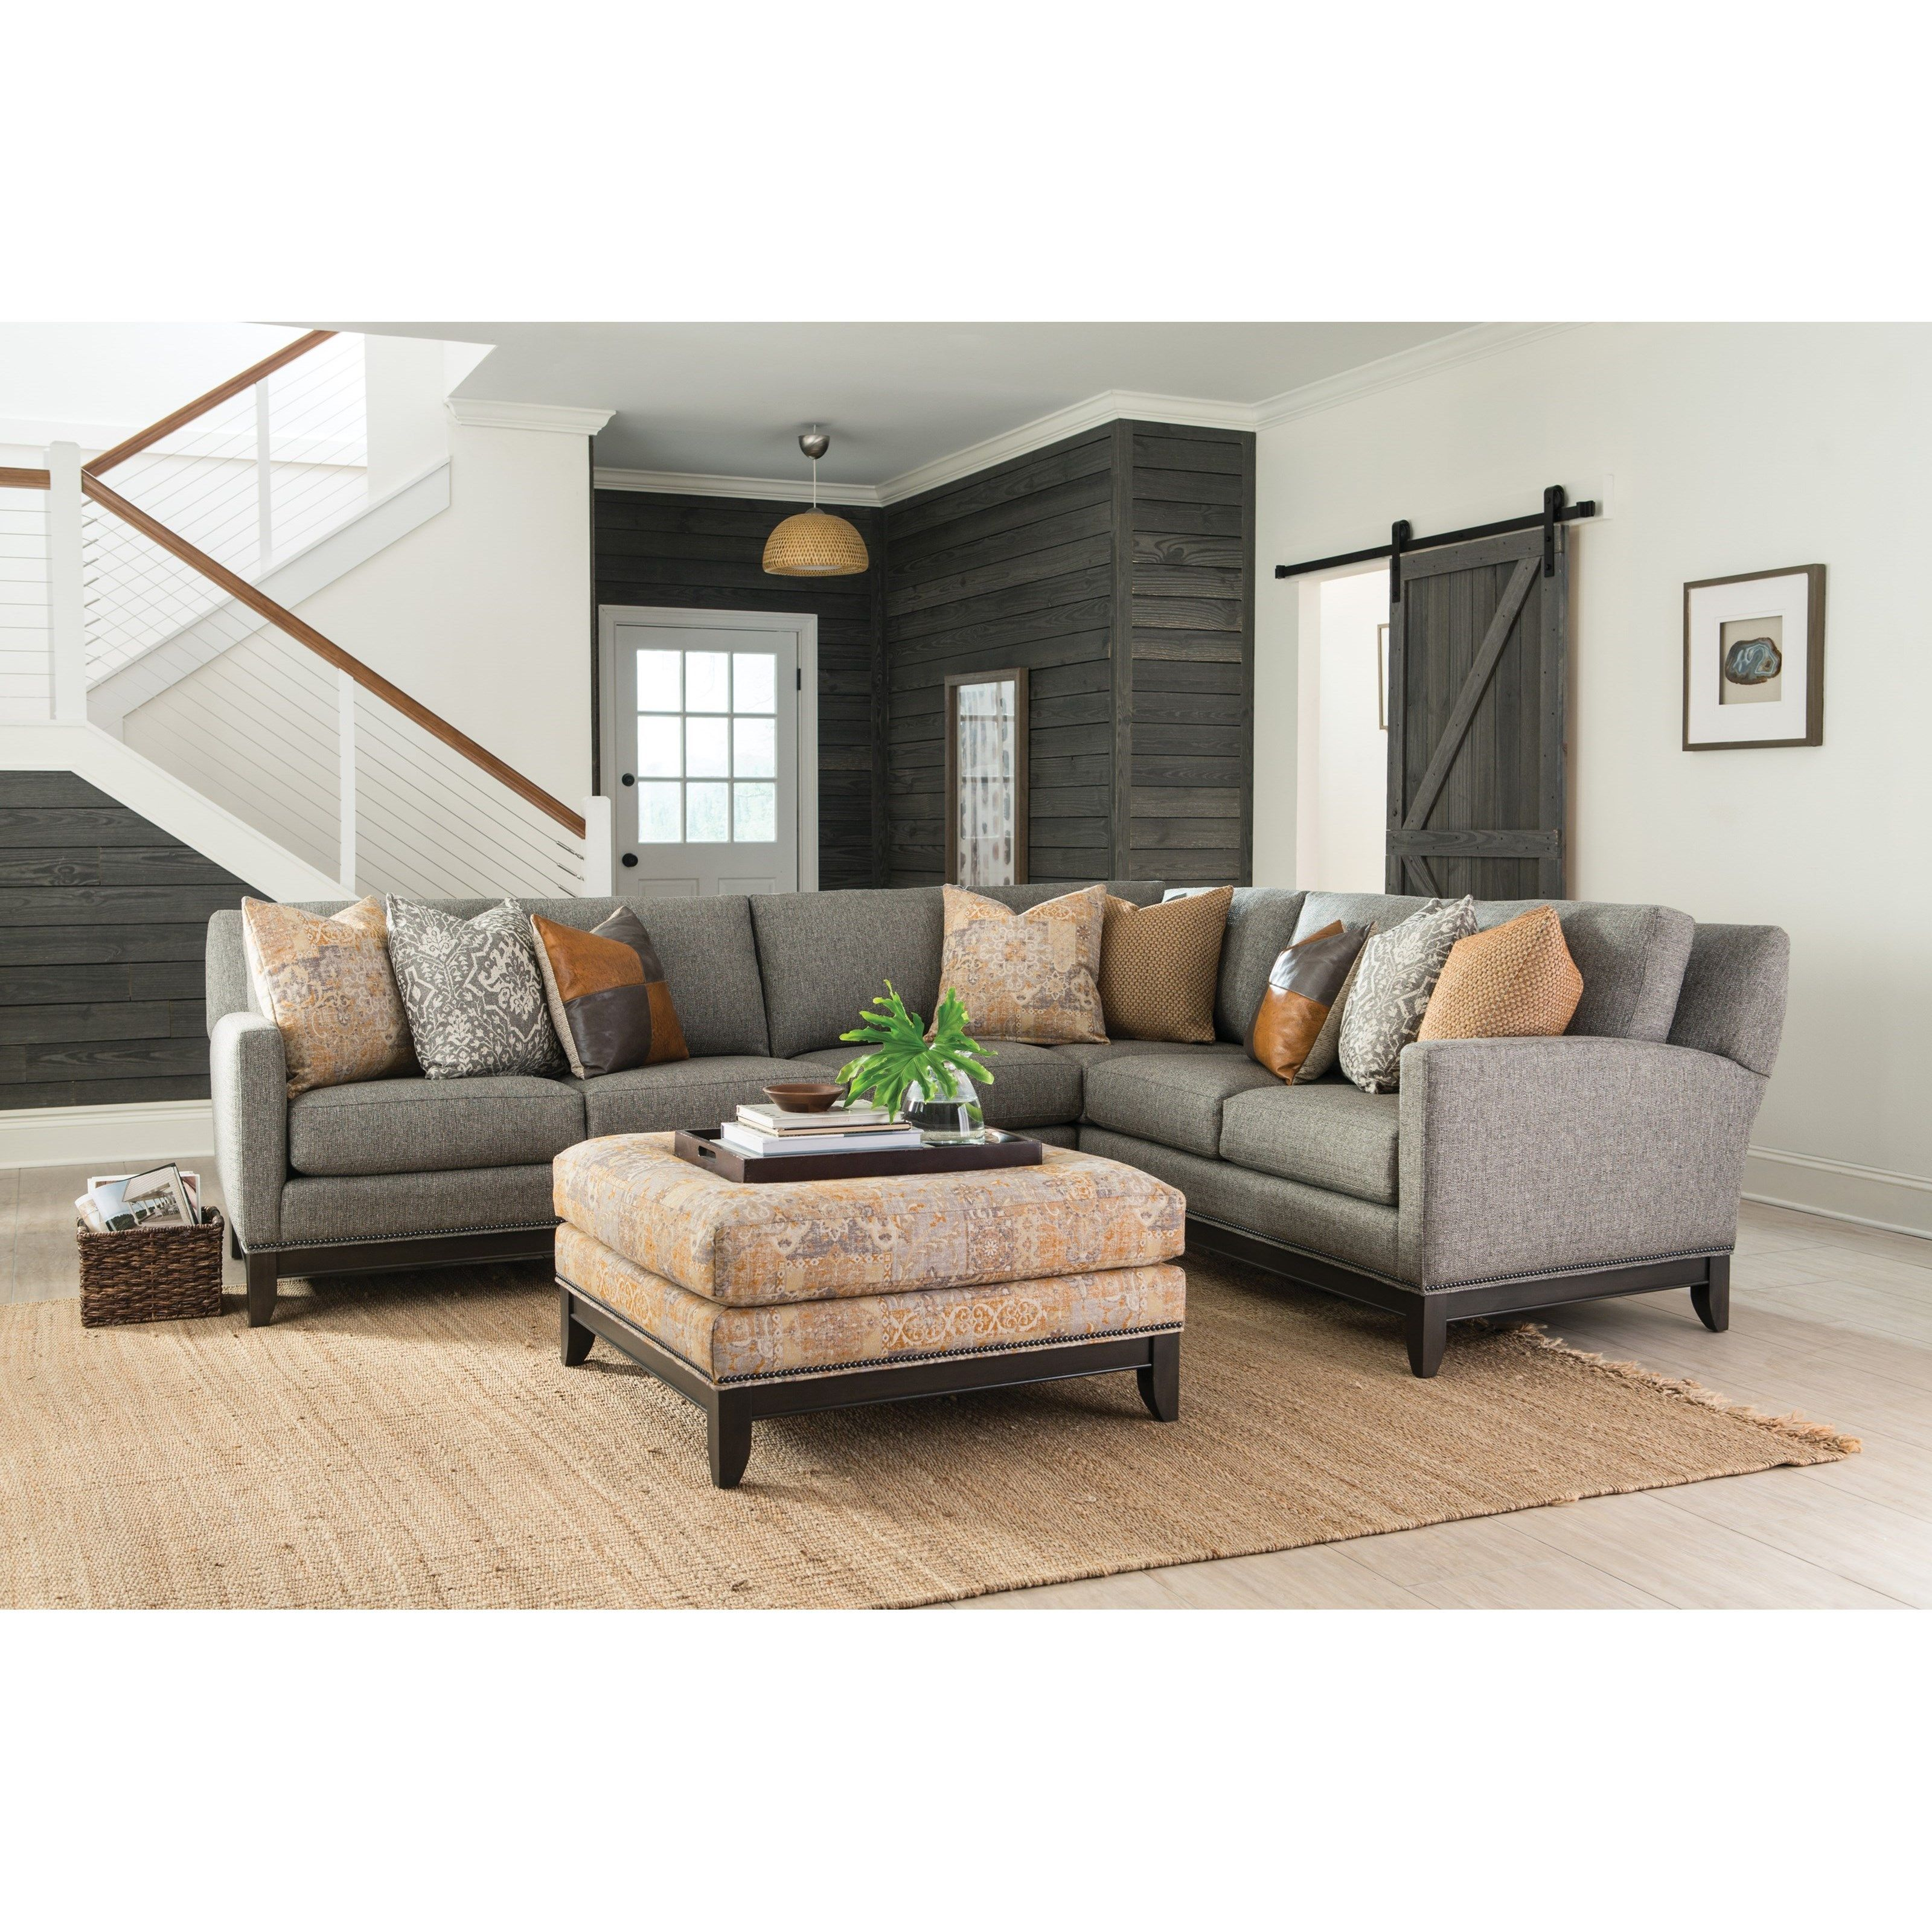 238 Sectional Sofa by Smith Brothers Furniture